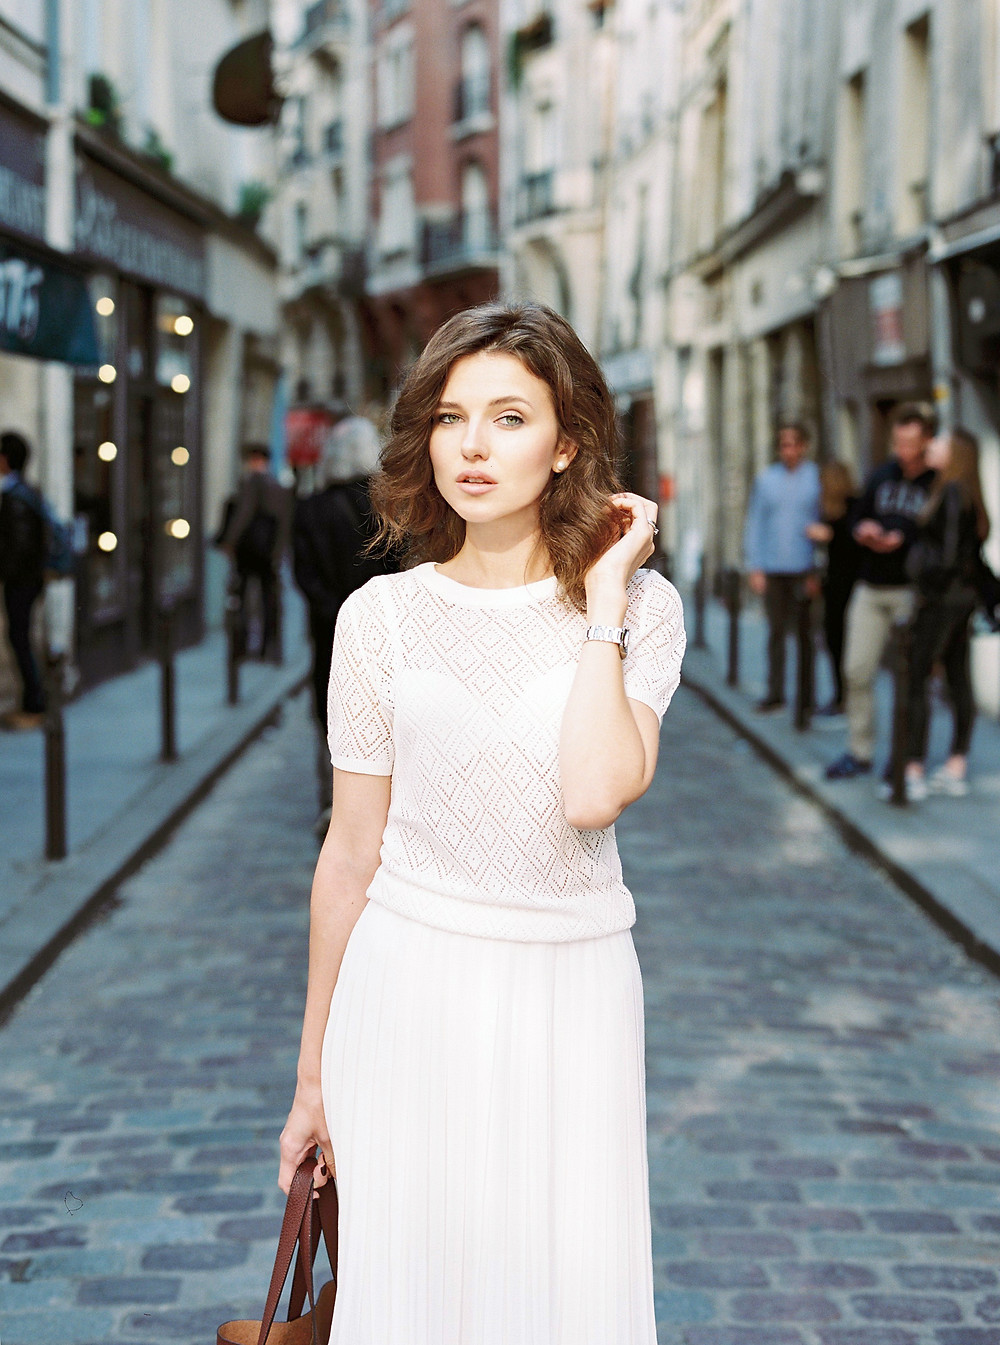 Parisian streets and girl  in wight dress